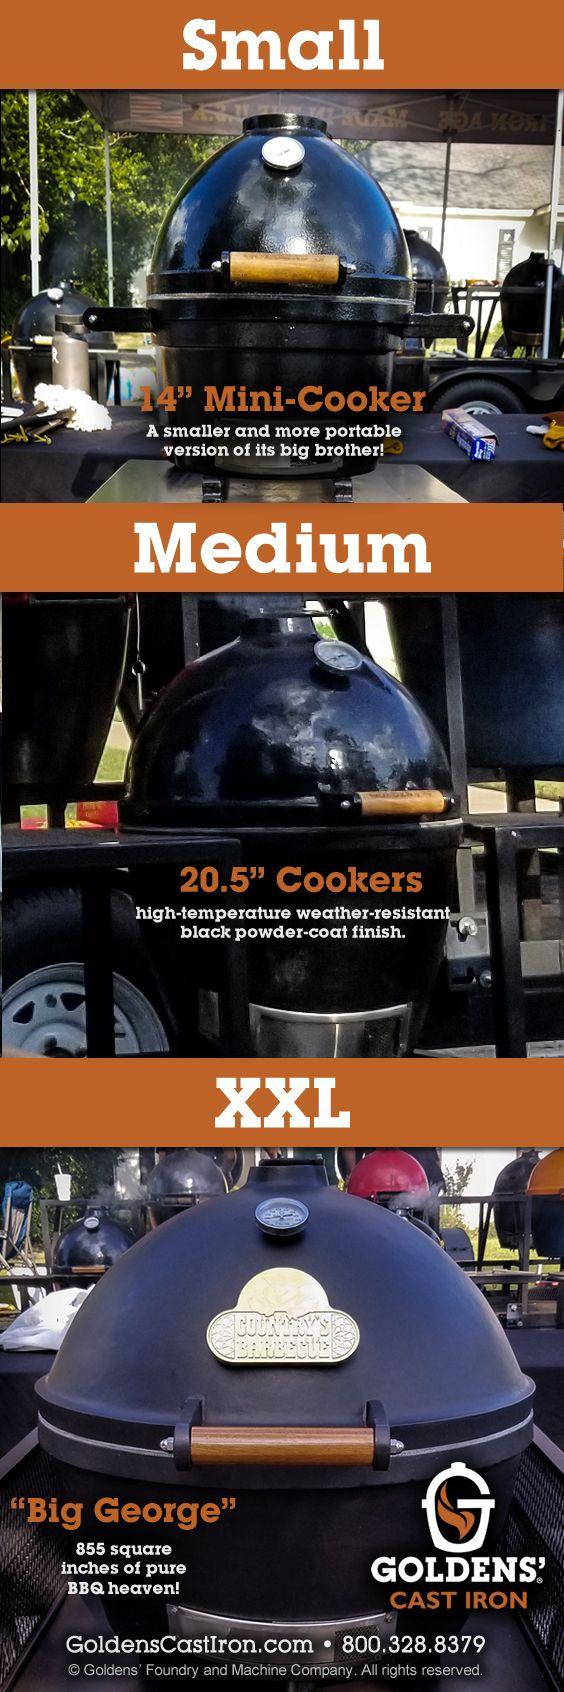 "Small, Medium or XXL? We offer #GoldensCastIron #Kamado #Cookers, #MiniCookers & ""Big George"" - 855 square inches of pure #BBQ heaven!  #kamado #castironkamado #kamadobbq #kamadobbqgrills #castirongrates #barbecue #bbqgrill #grill #grills #grilling #firepit #firepits #recipe #recipes #bbqrecipes #barbecuegrill #barbecuegrilling #barbecuesauce #bbqguys  #bbqbrethren #charcoal #castiron #goldenscastiron #madeinamerica #ironage #goldenscastironcooker   #castironfirepit #kamadogrill #kamado"